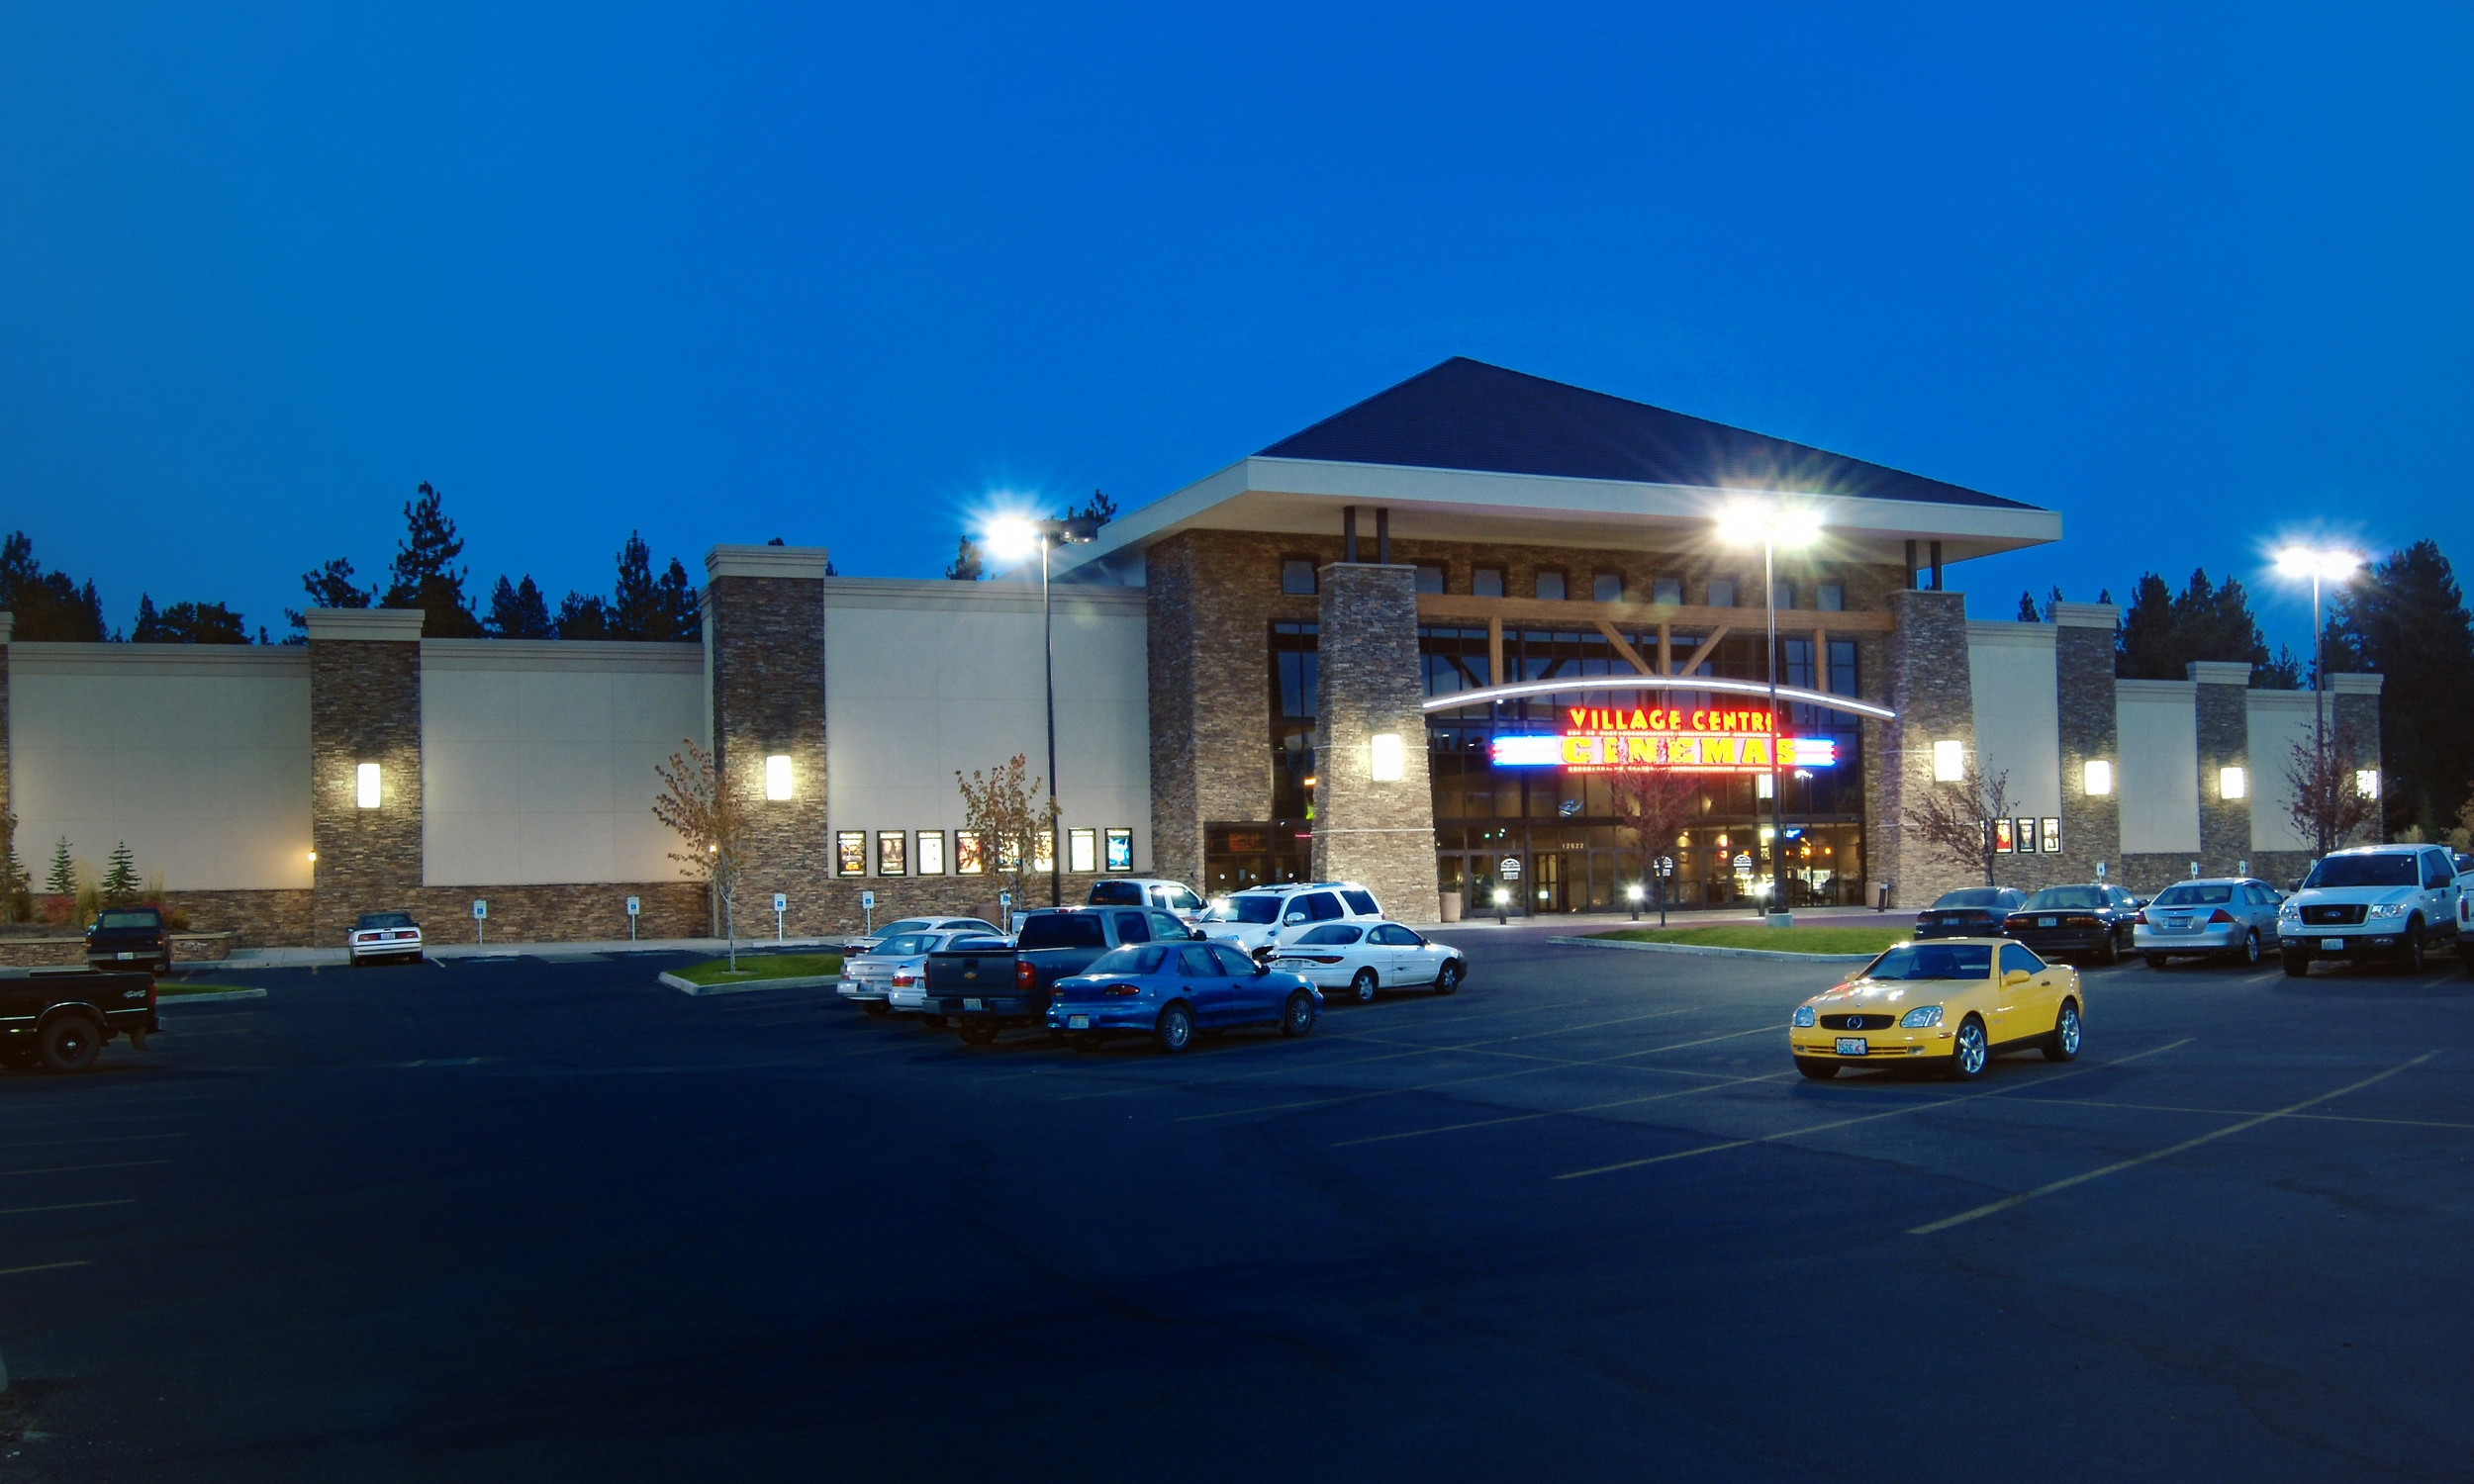 Owner: Corporate Pointe Developers Location: Spokane, WA   This facility added a 14-screen multiplex to the growing number of Village Center Cinemas in Spokane, WA. The structural shell and demising walls between the theaters were constructed using insulated concrete forms, that enhance the theatre acoustics efficiently and economically. Aside from an extensive concessions counter, the lobby also houses a party room and gaming area.